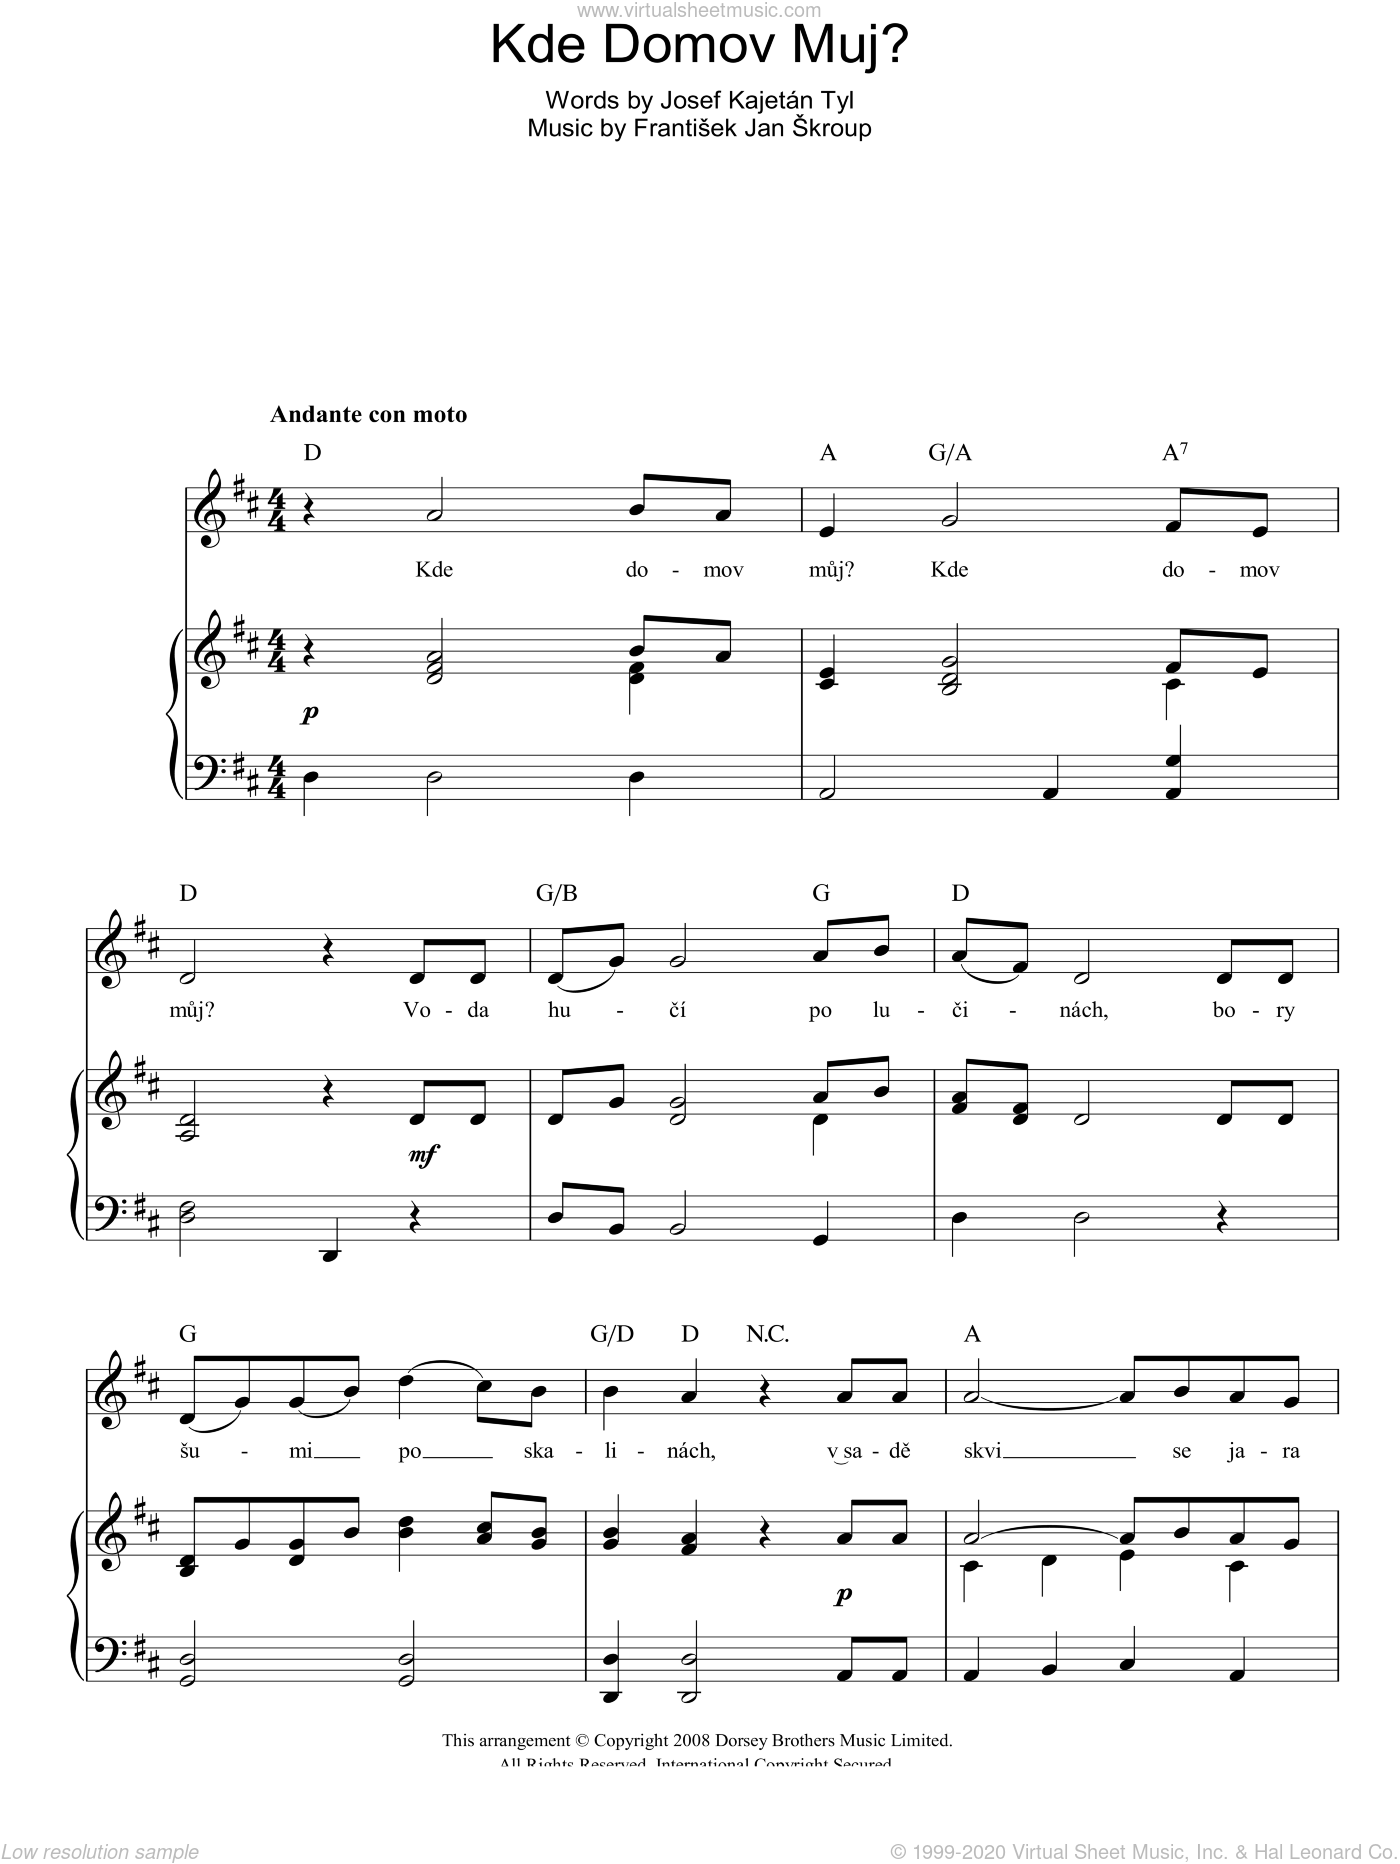 Kde Domov Muj? (Czech Republic National Anthem) sheet music for voice, piano or guitar by Josef Kajetan Tyl